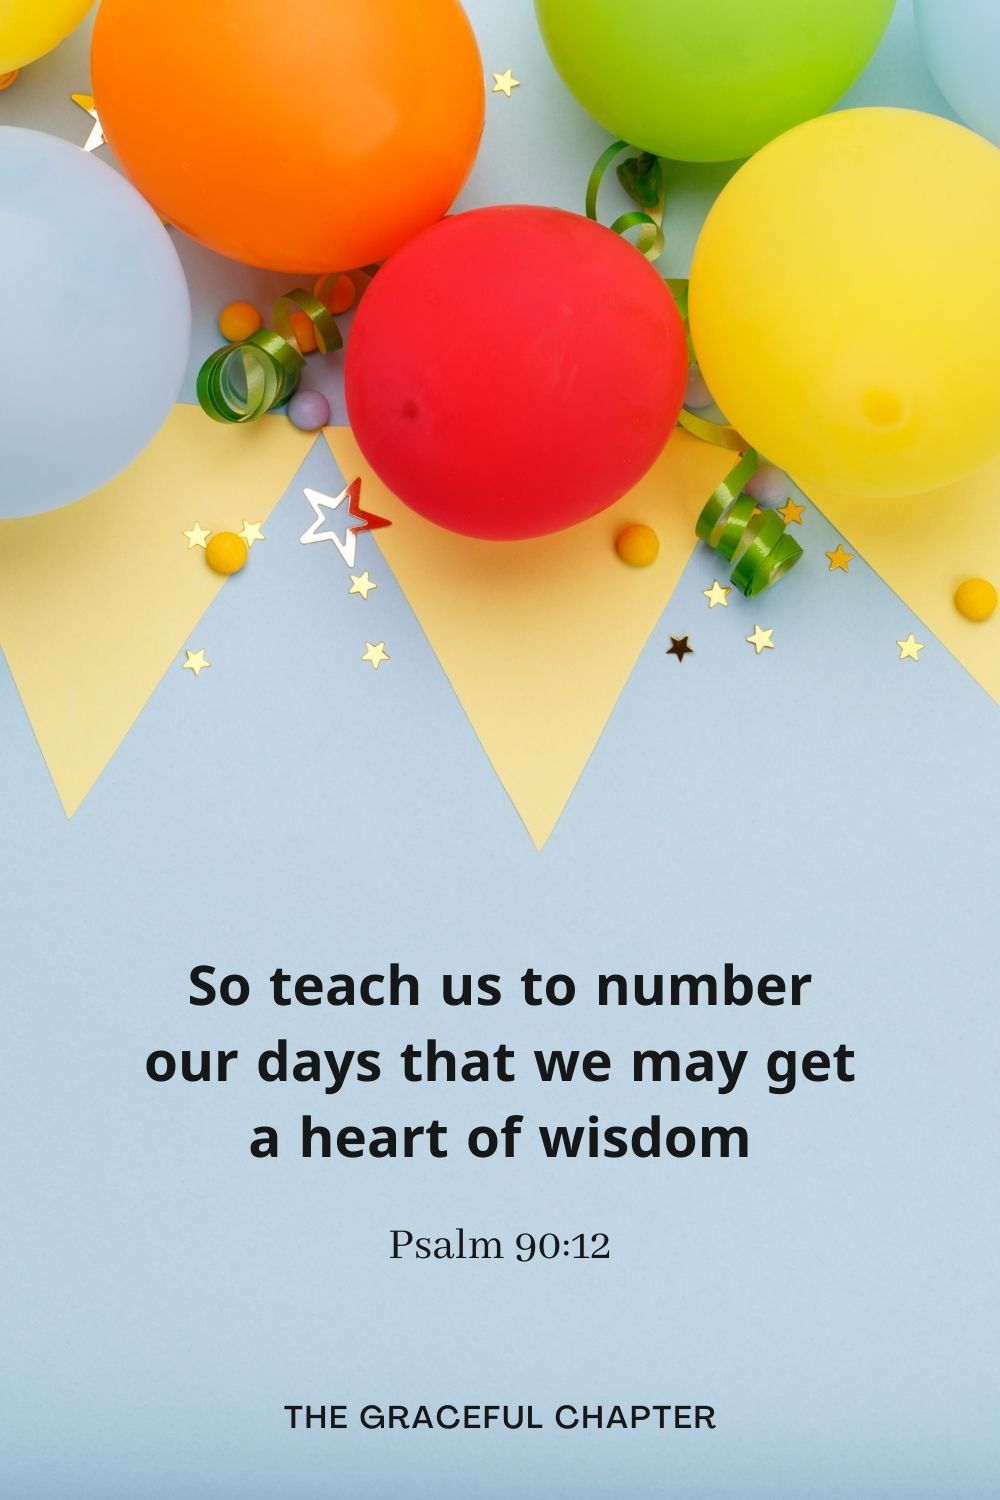 So teach us to number our days that we may get a heart of wisdom Psalm 90:12